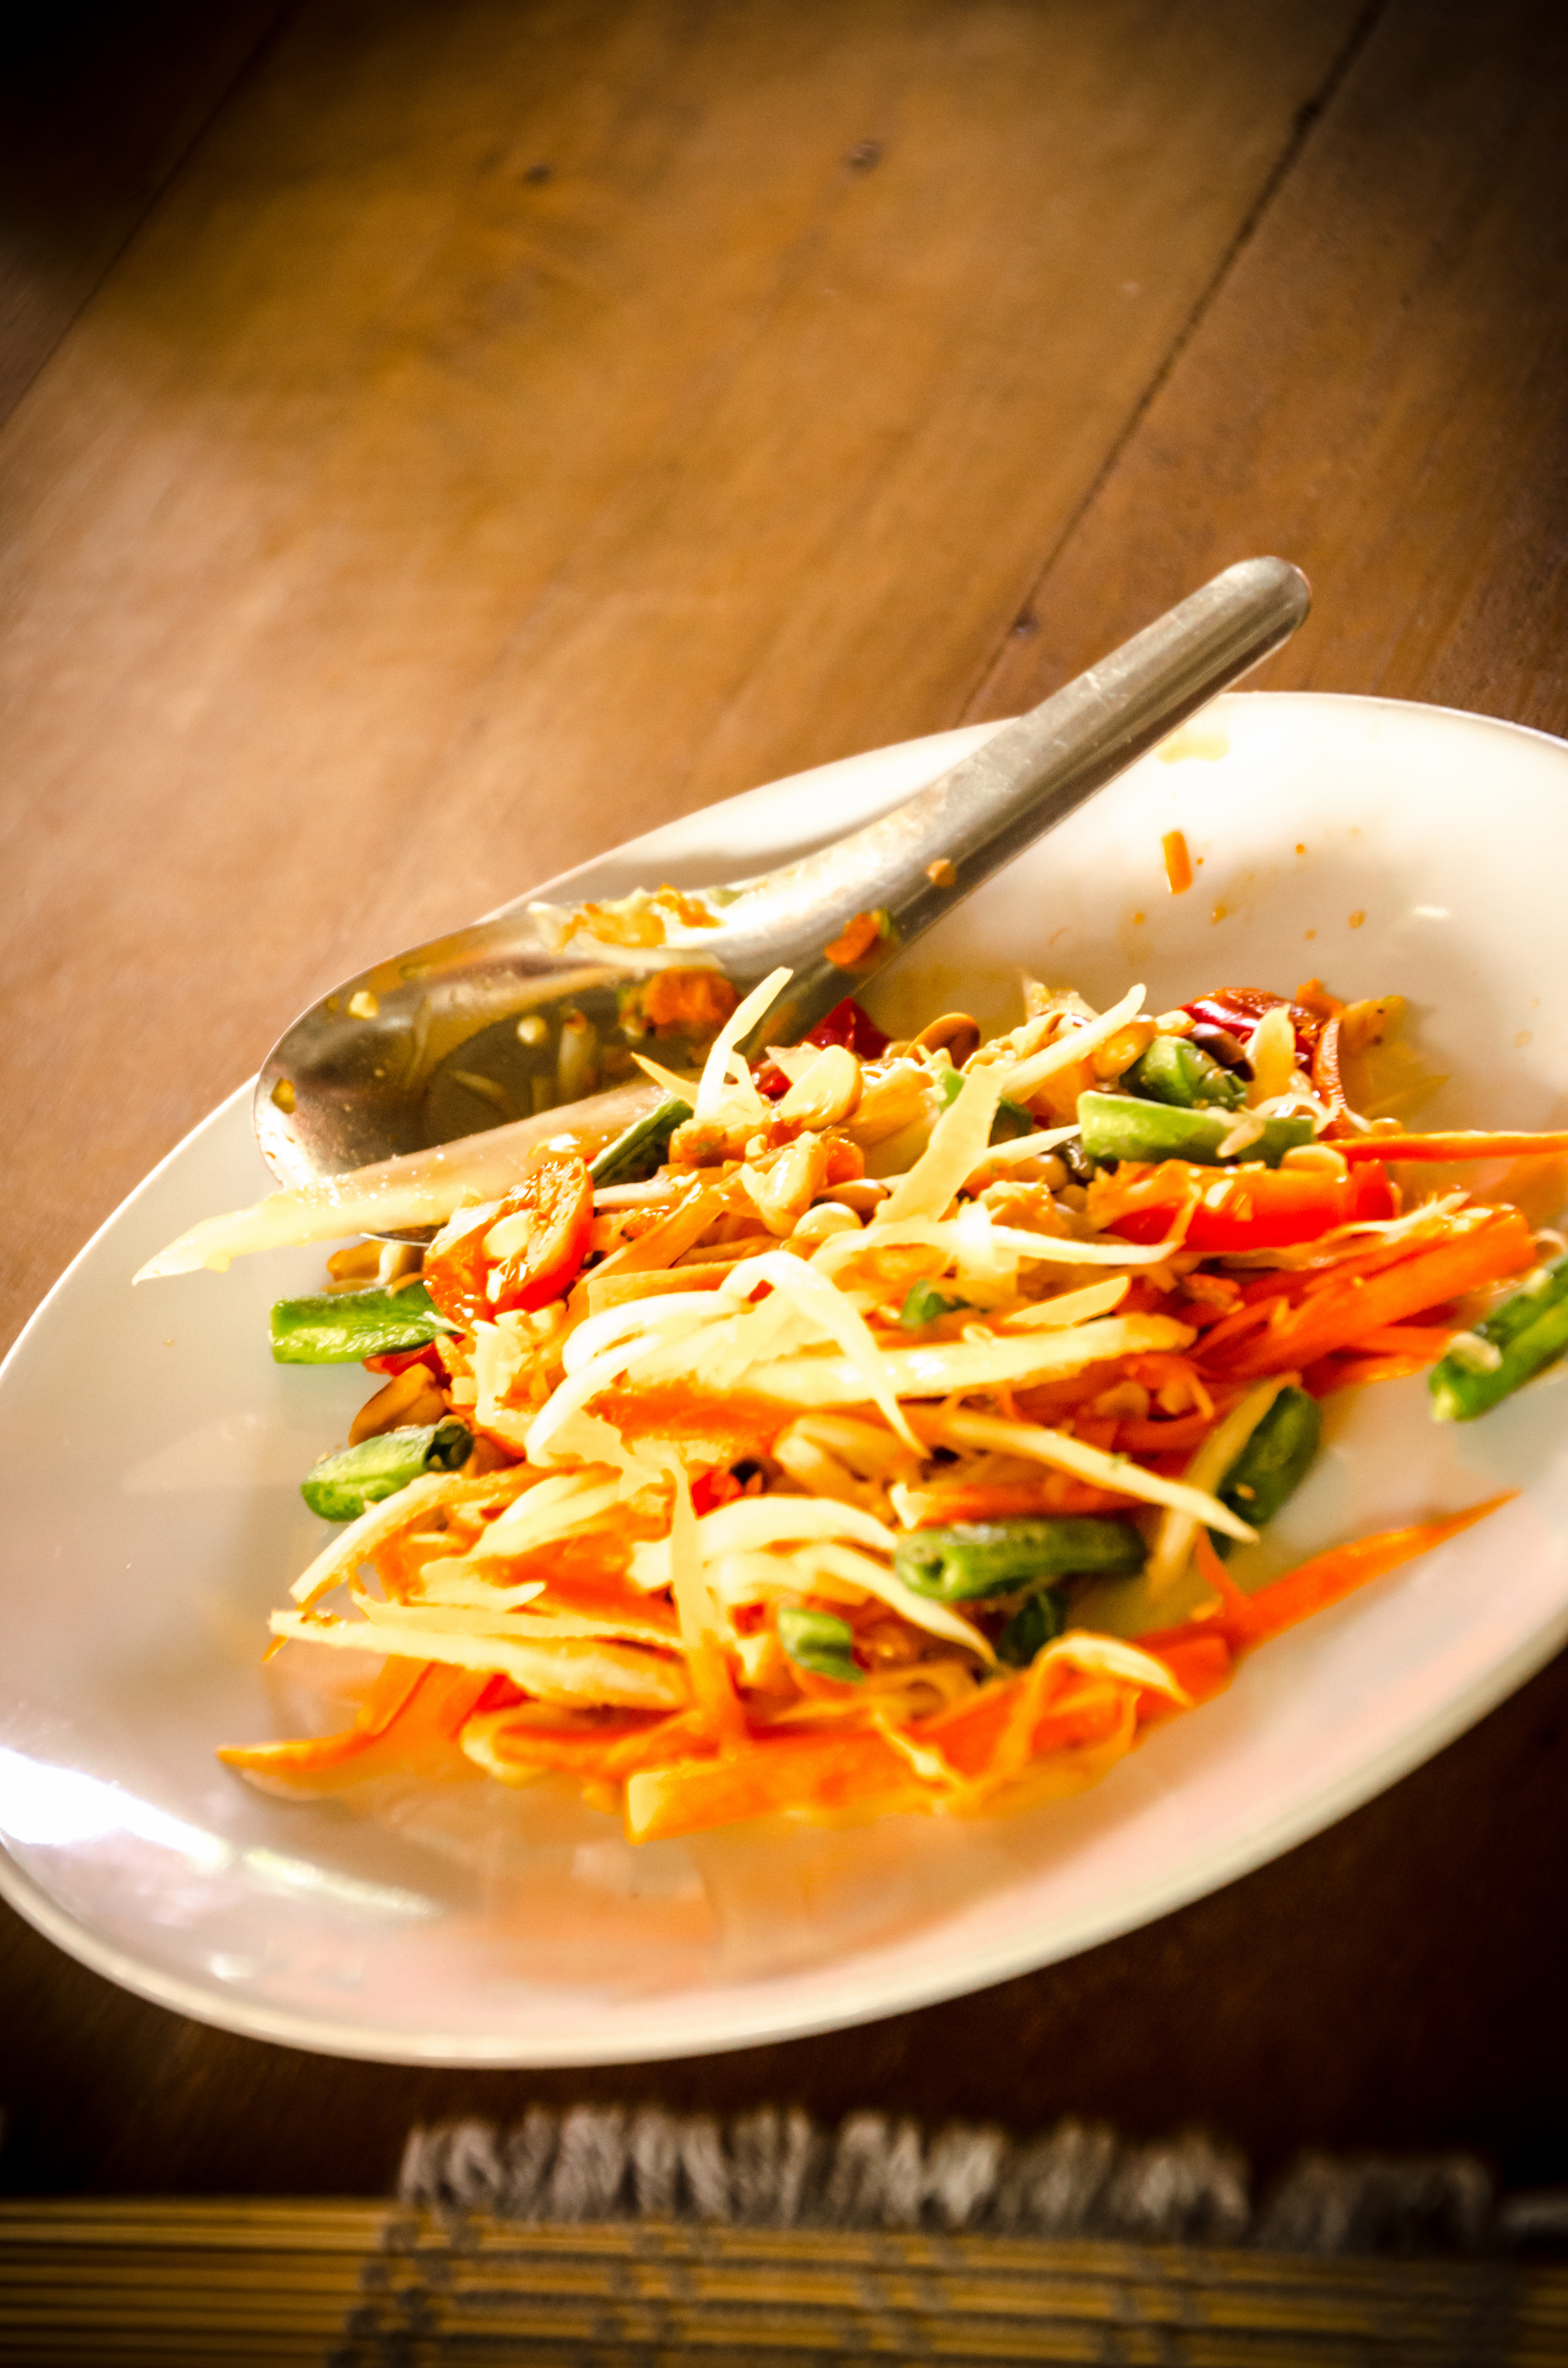 Thai Cooking School Chiang Mia - papaya salad SF-2